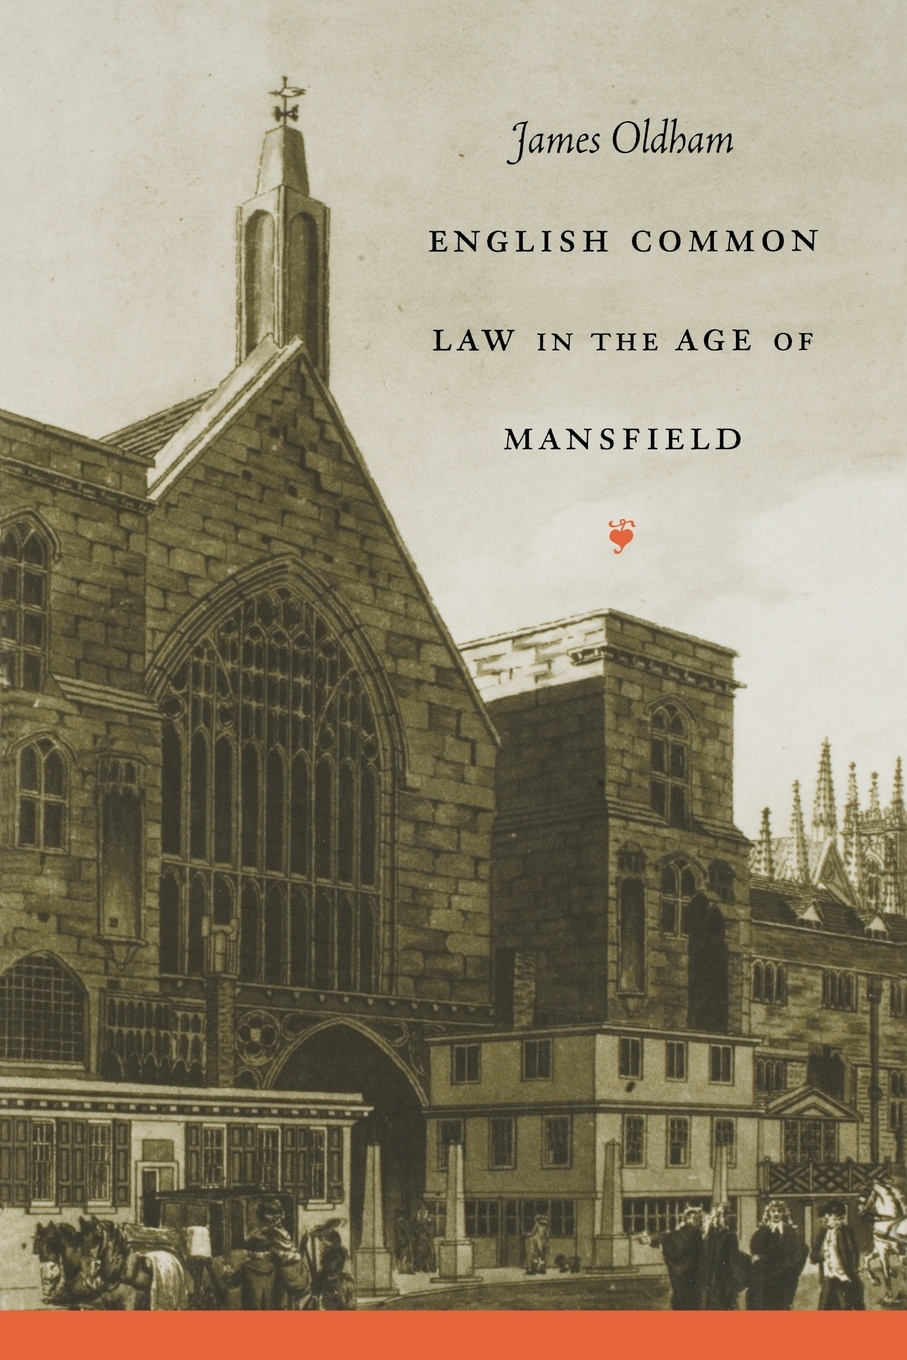 James Oldham English Common Law in the Age of Mansfield